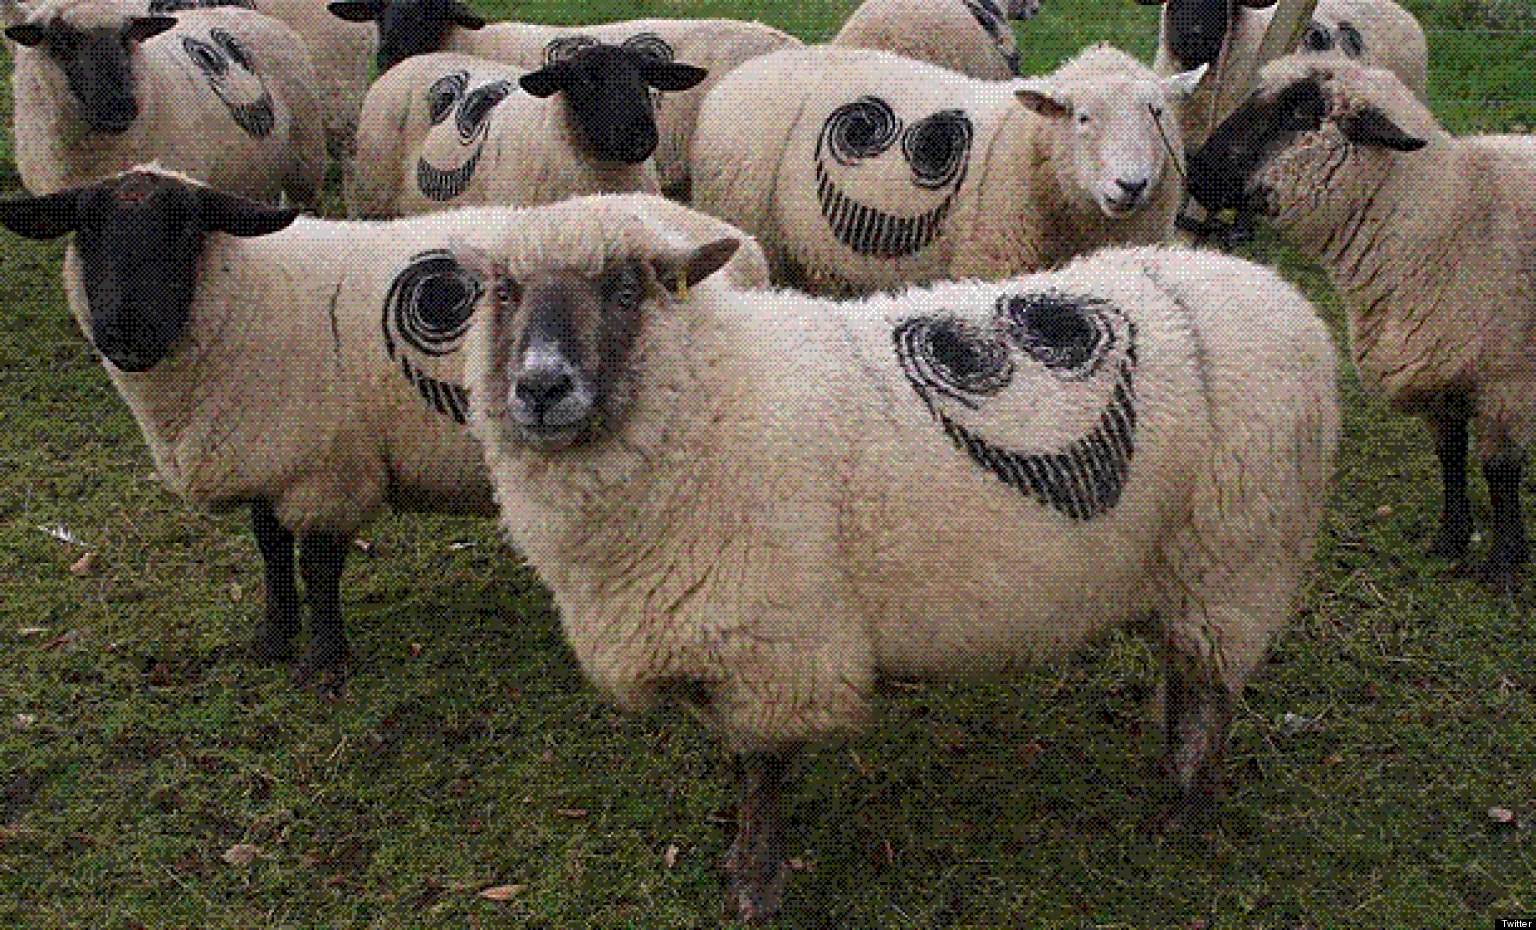 Creepy Sheep Mystery Solved After Smiley Faces Branded On ...